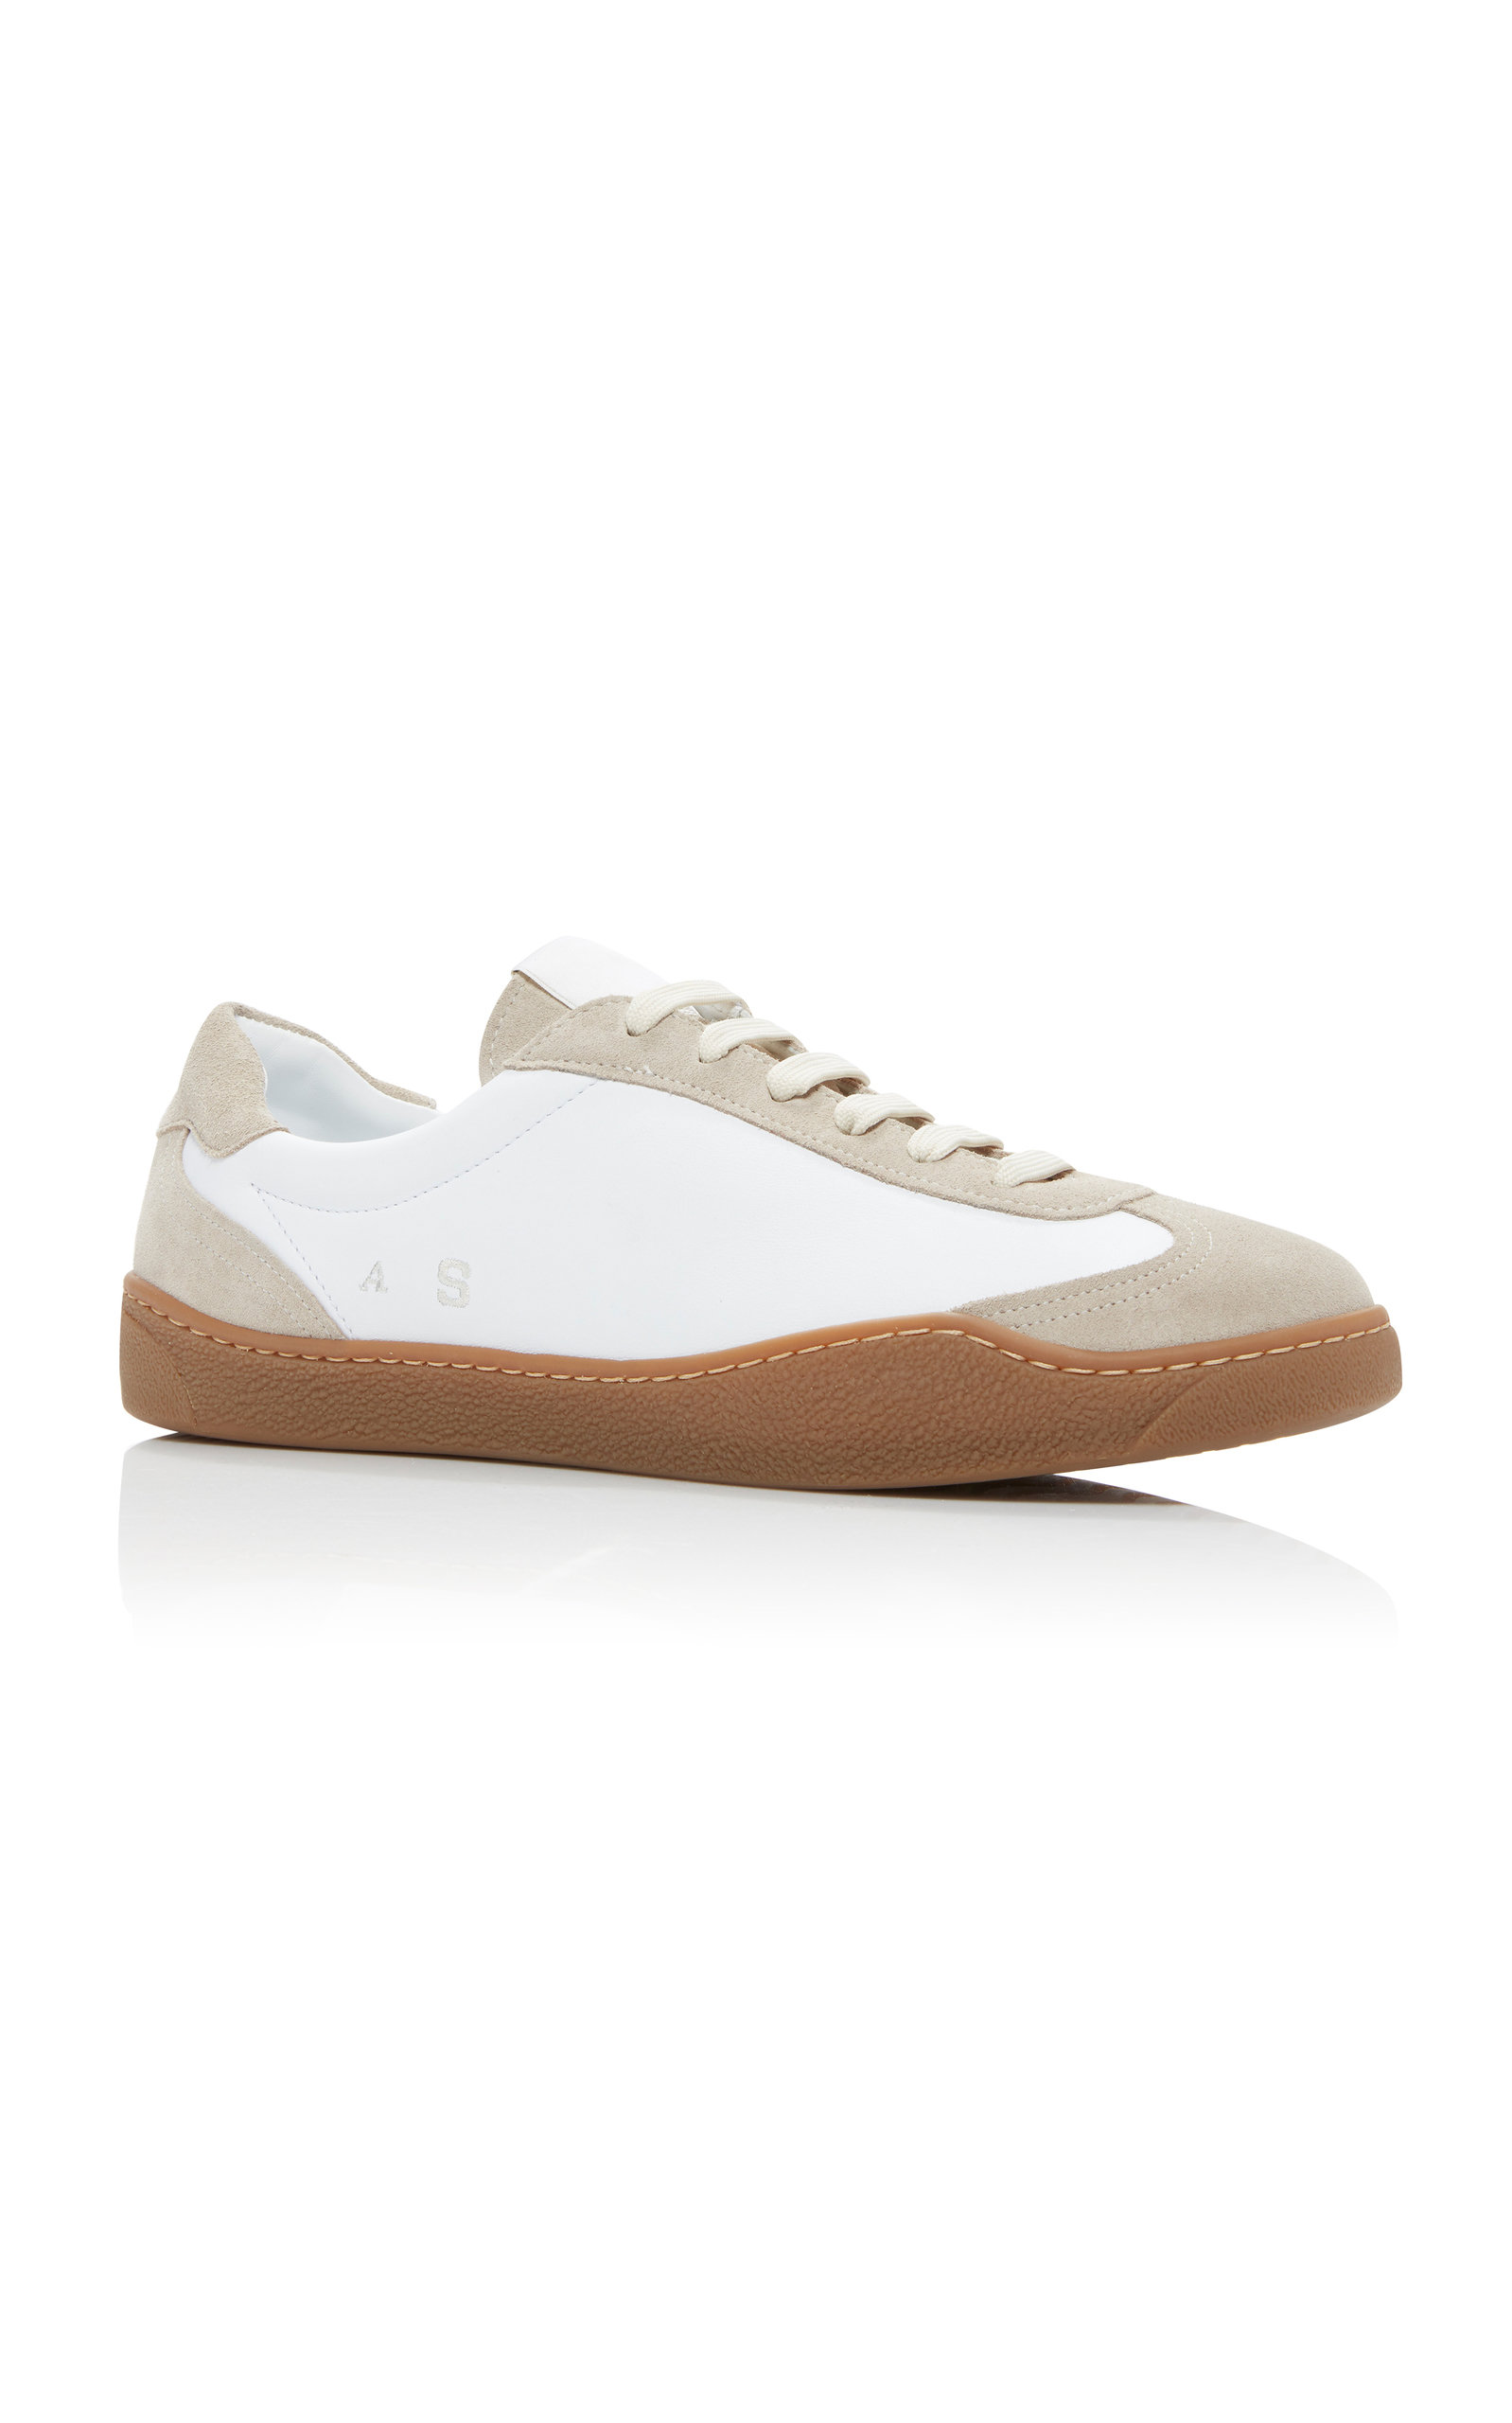 promo code 097e3 a9ec7 large acne-studios-neutral-lars-leather-sneakers.jpg